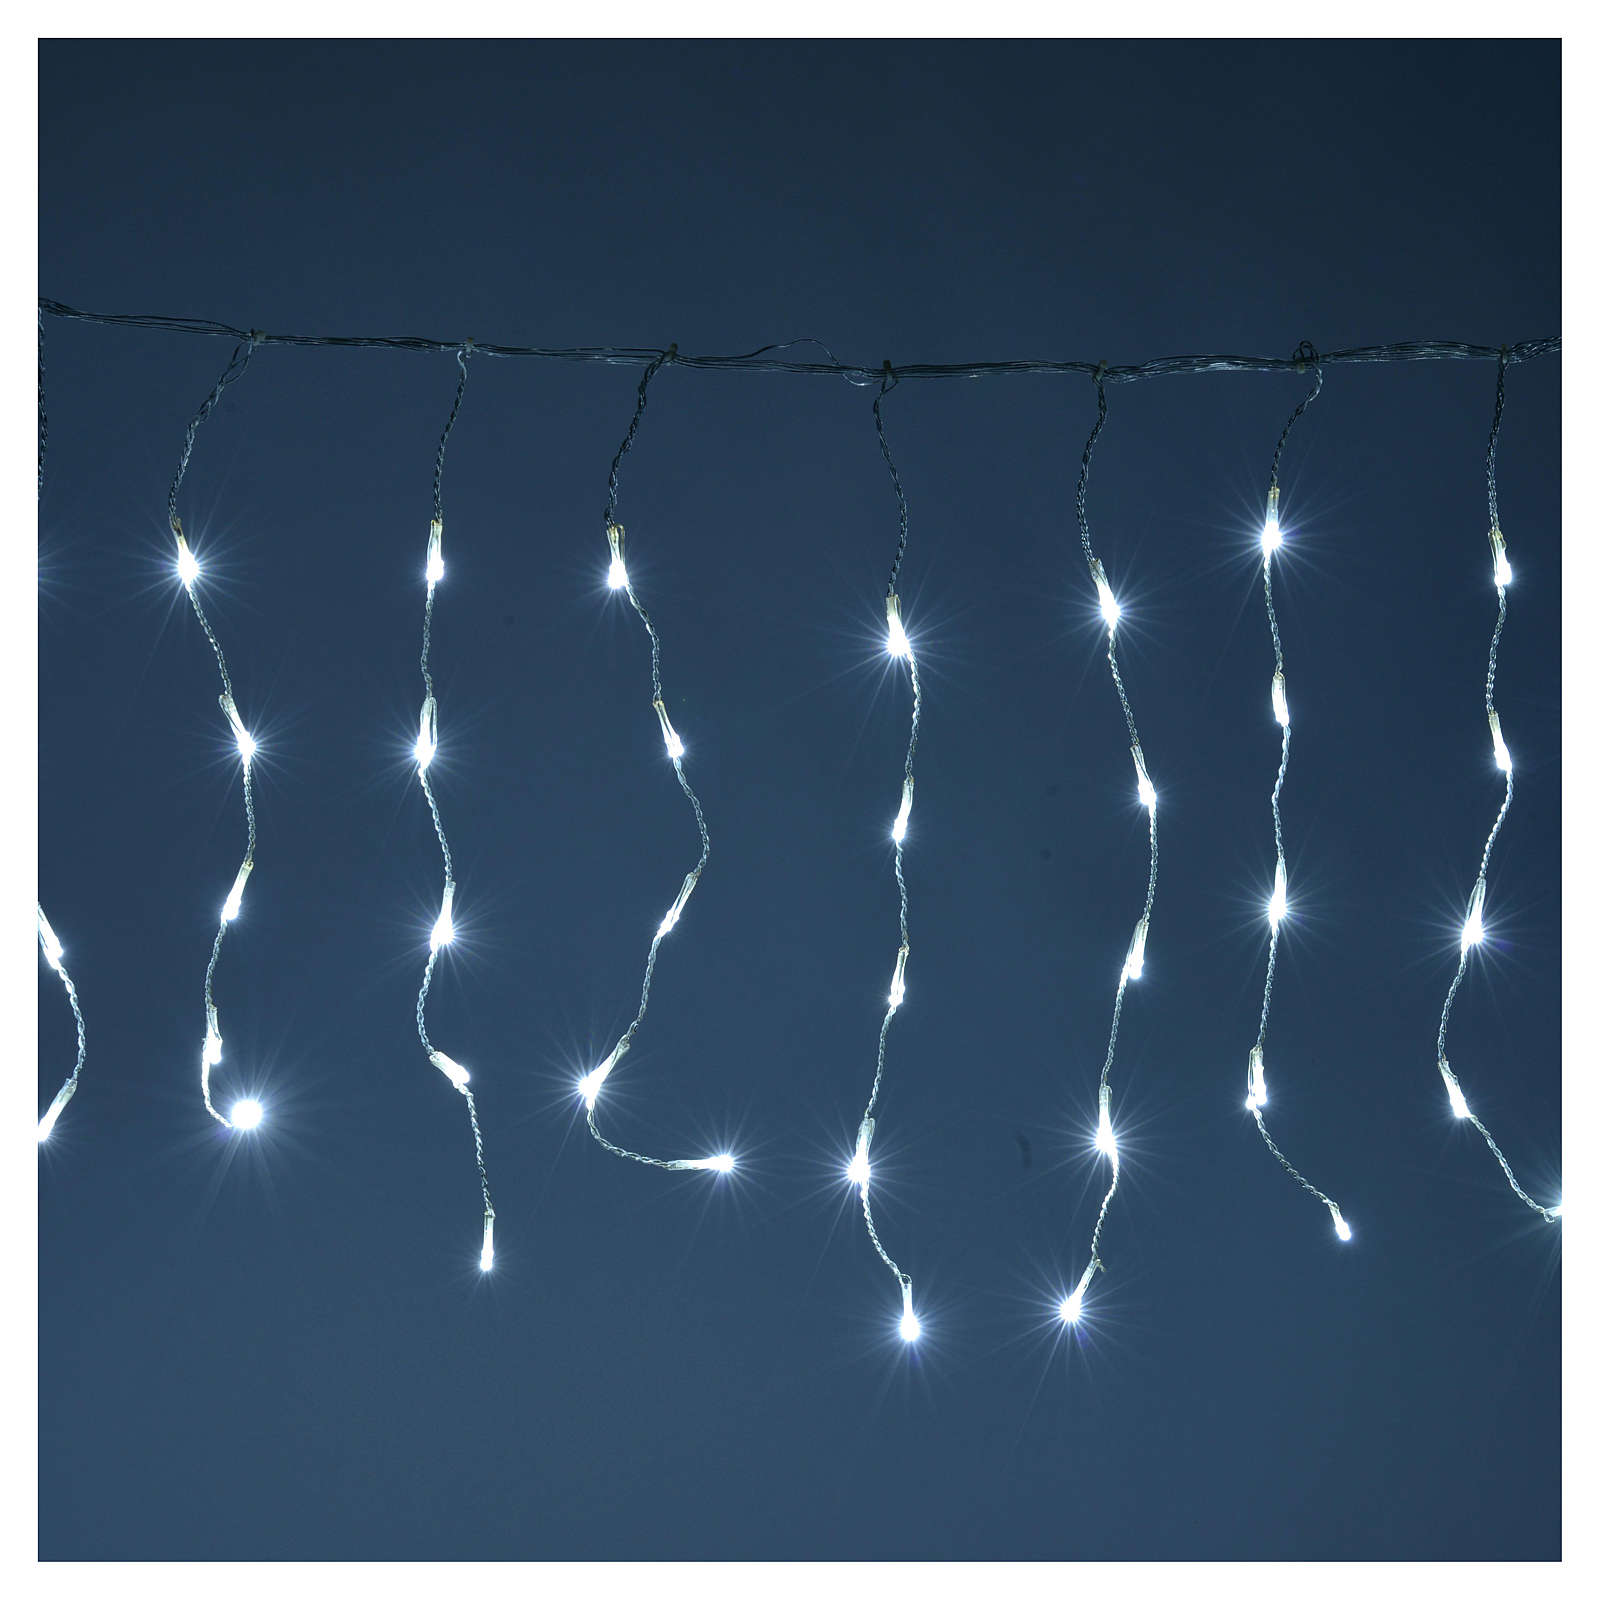 Christmas LED curtain, 110 LED, ice white, for outdoor use, programmable 3